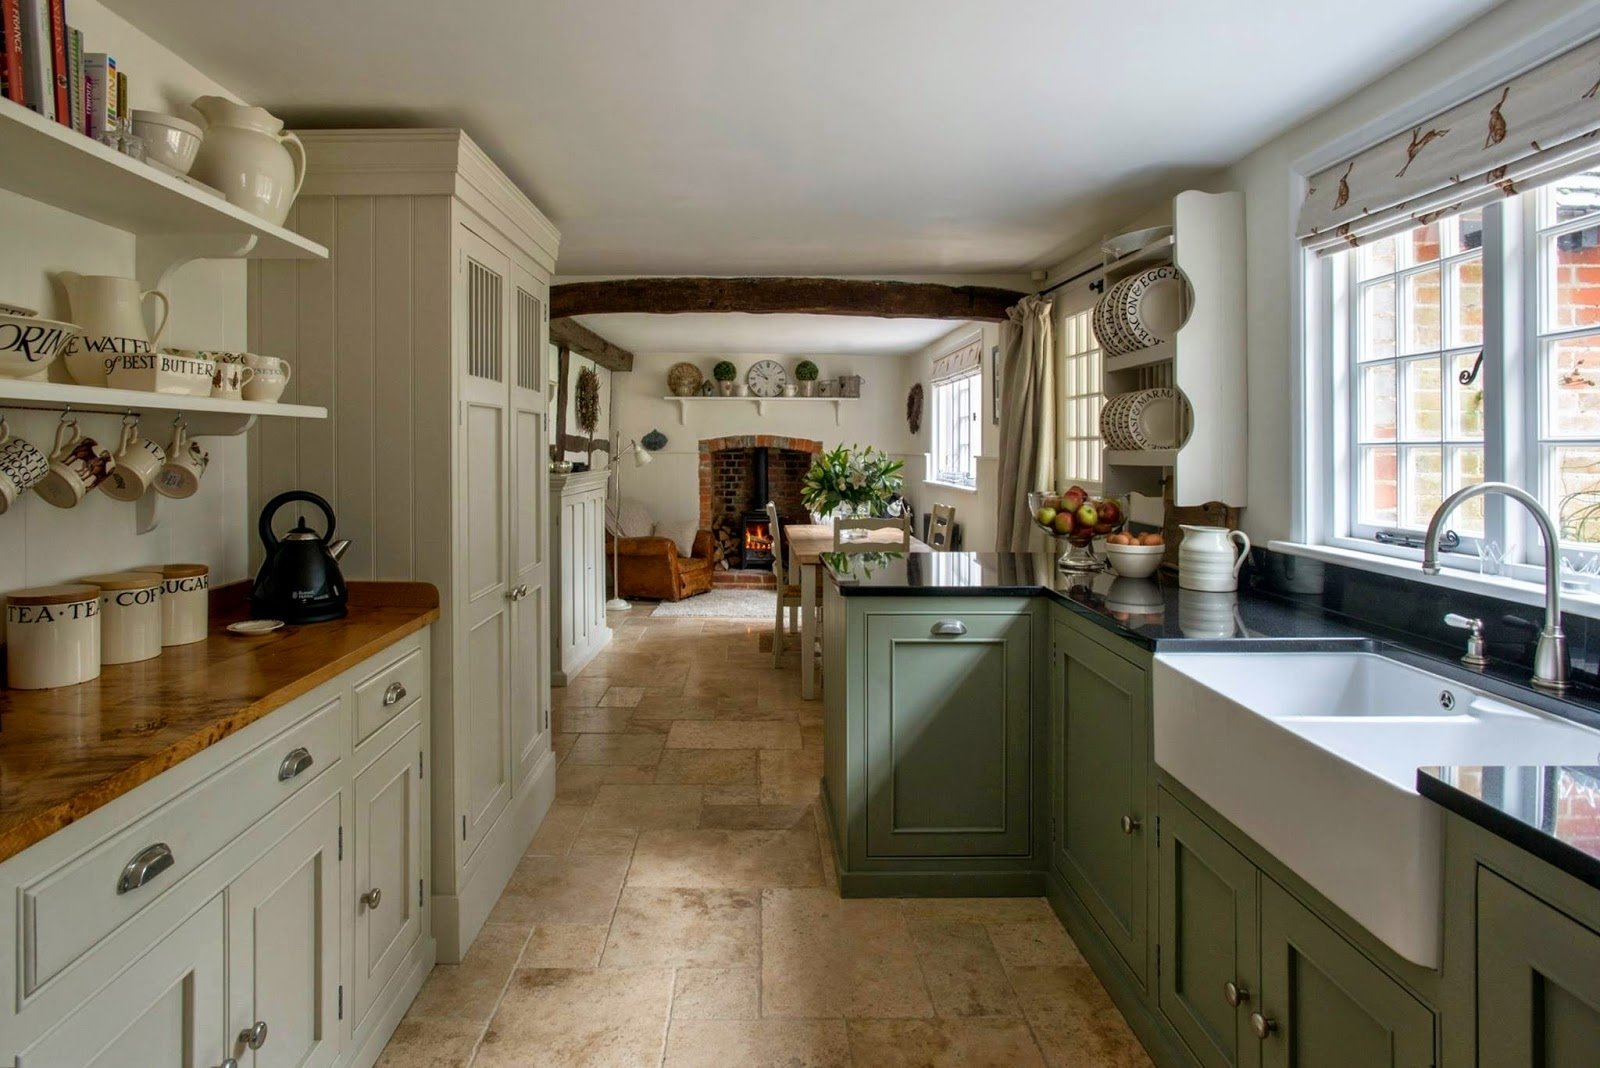 10 Fashionable French Country Kitchen Decorating Ideas country kitchen decorating ideas rustic kitchen decorating ideas 2020